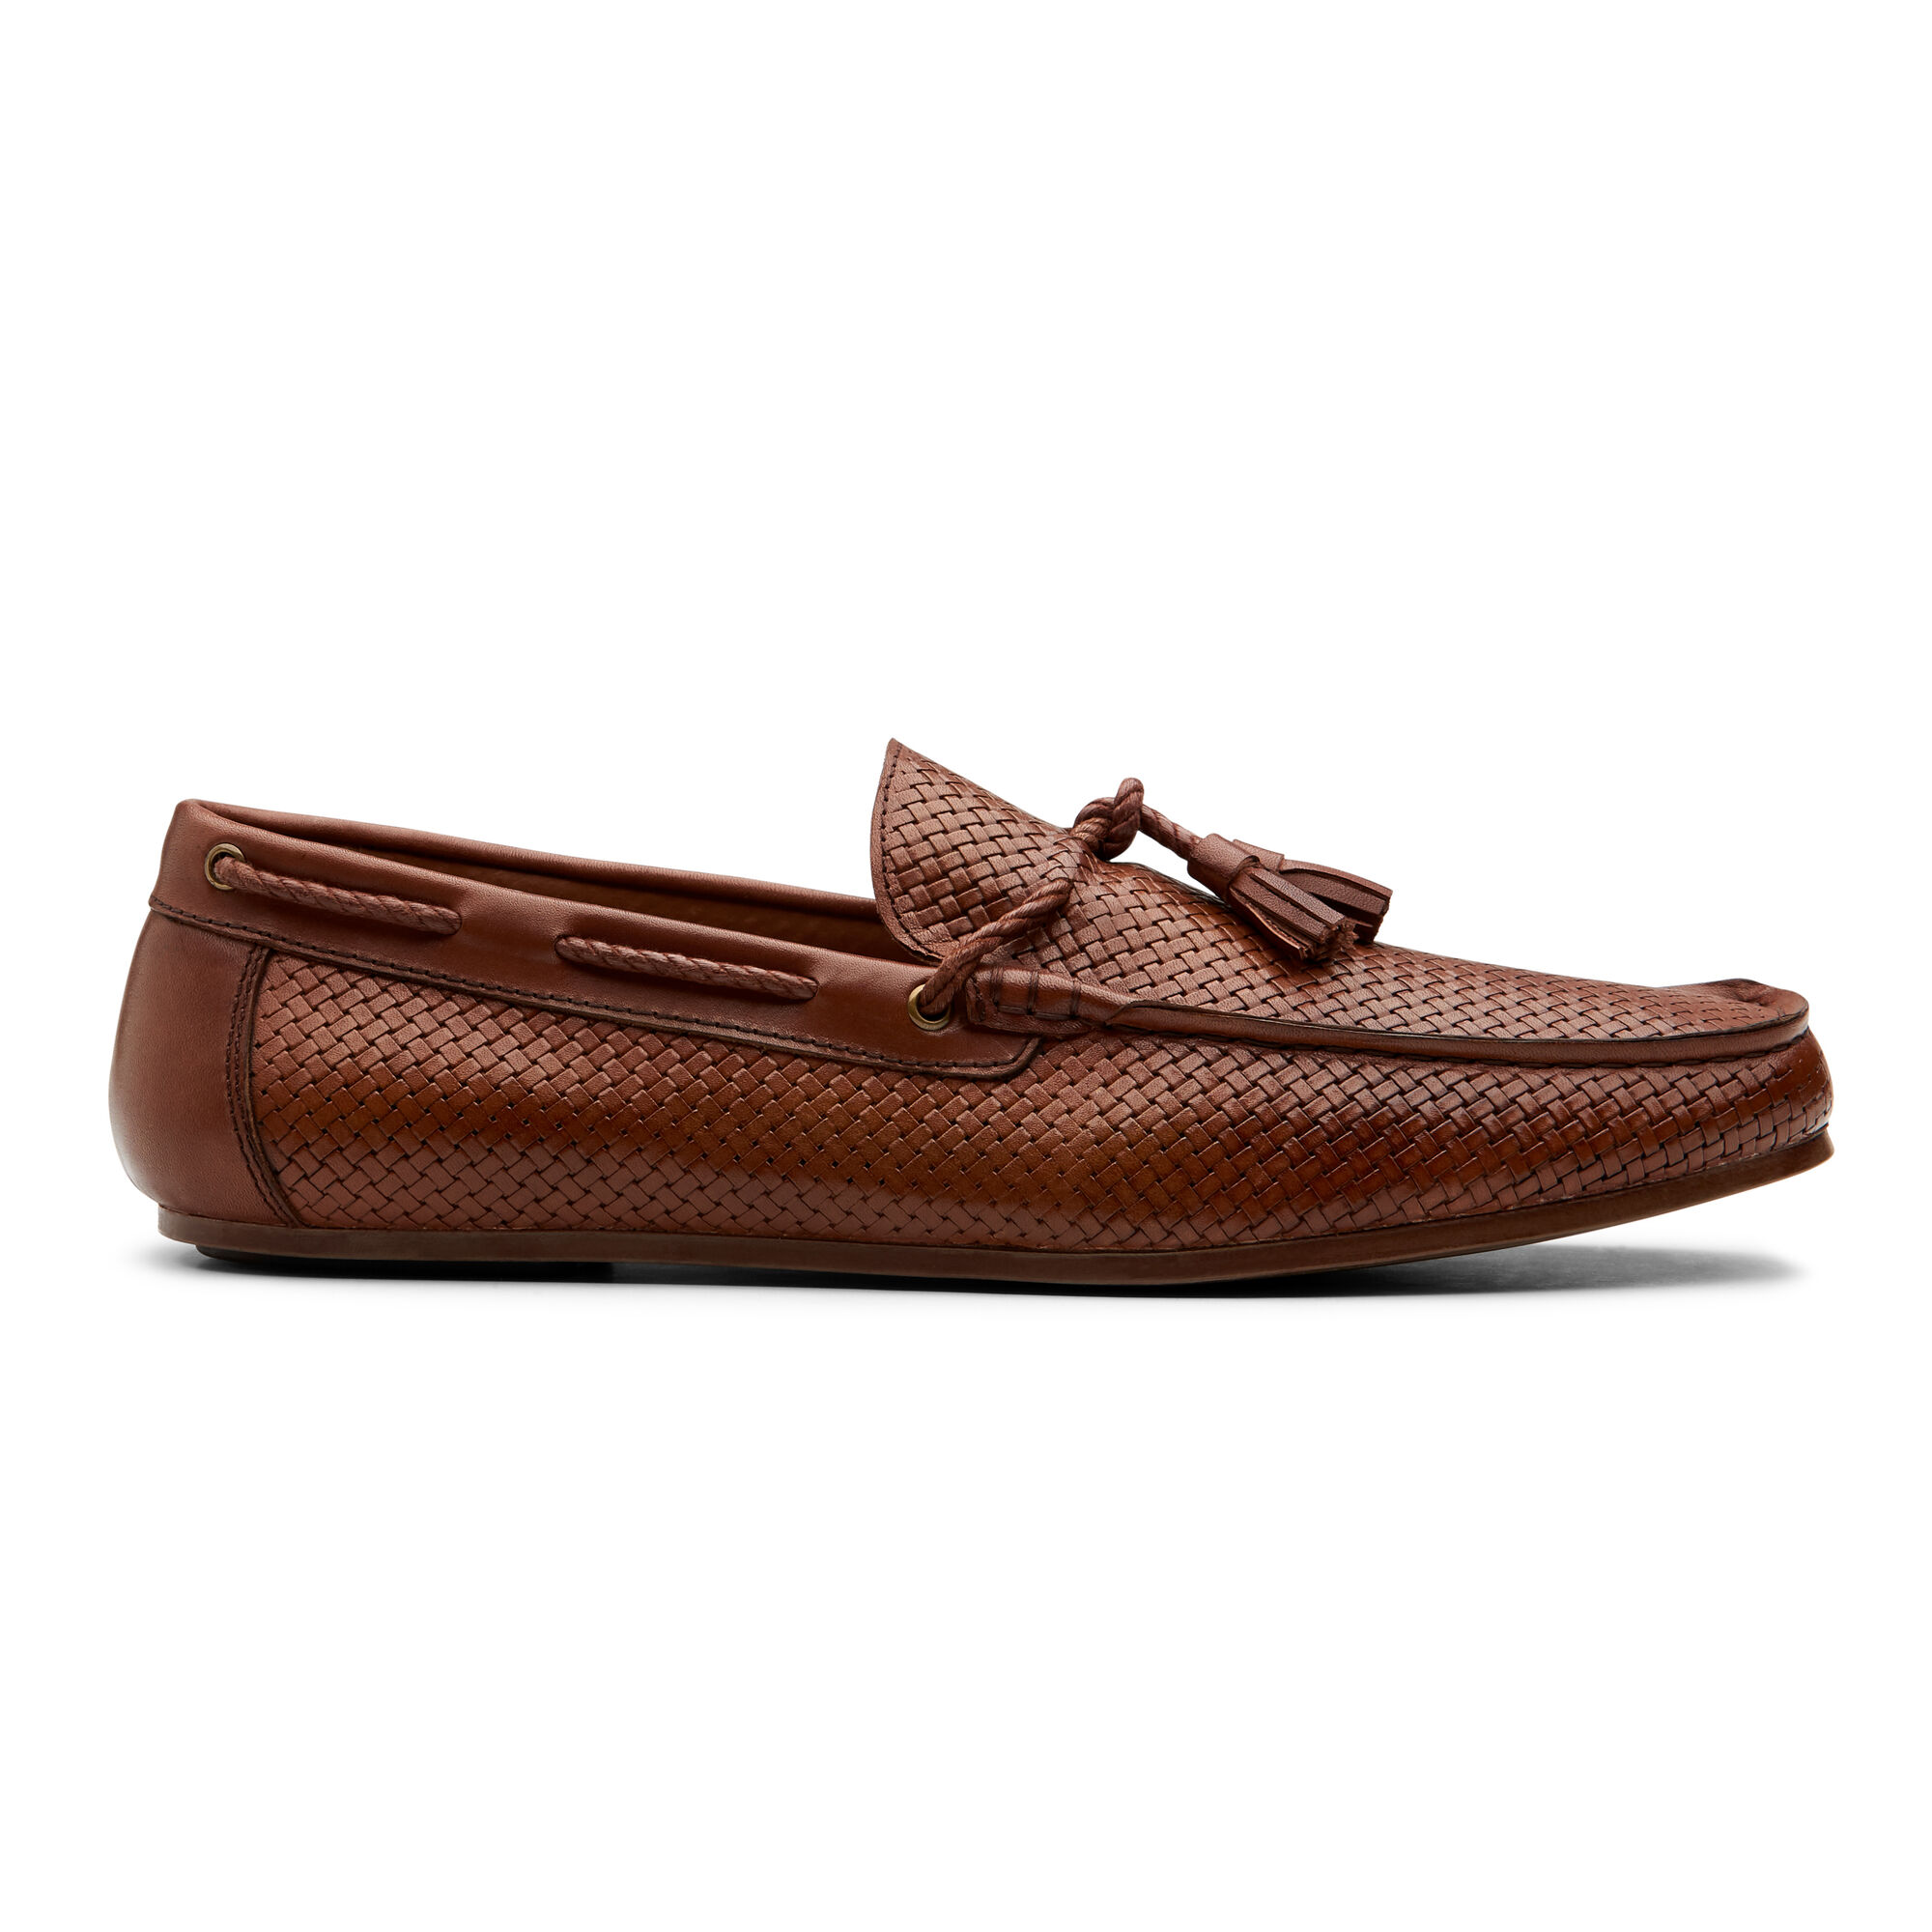 501cfe46aec Adriell - Cognac - Woven Leather Loafers | Politix